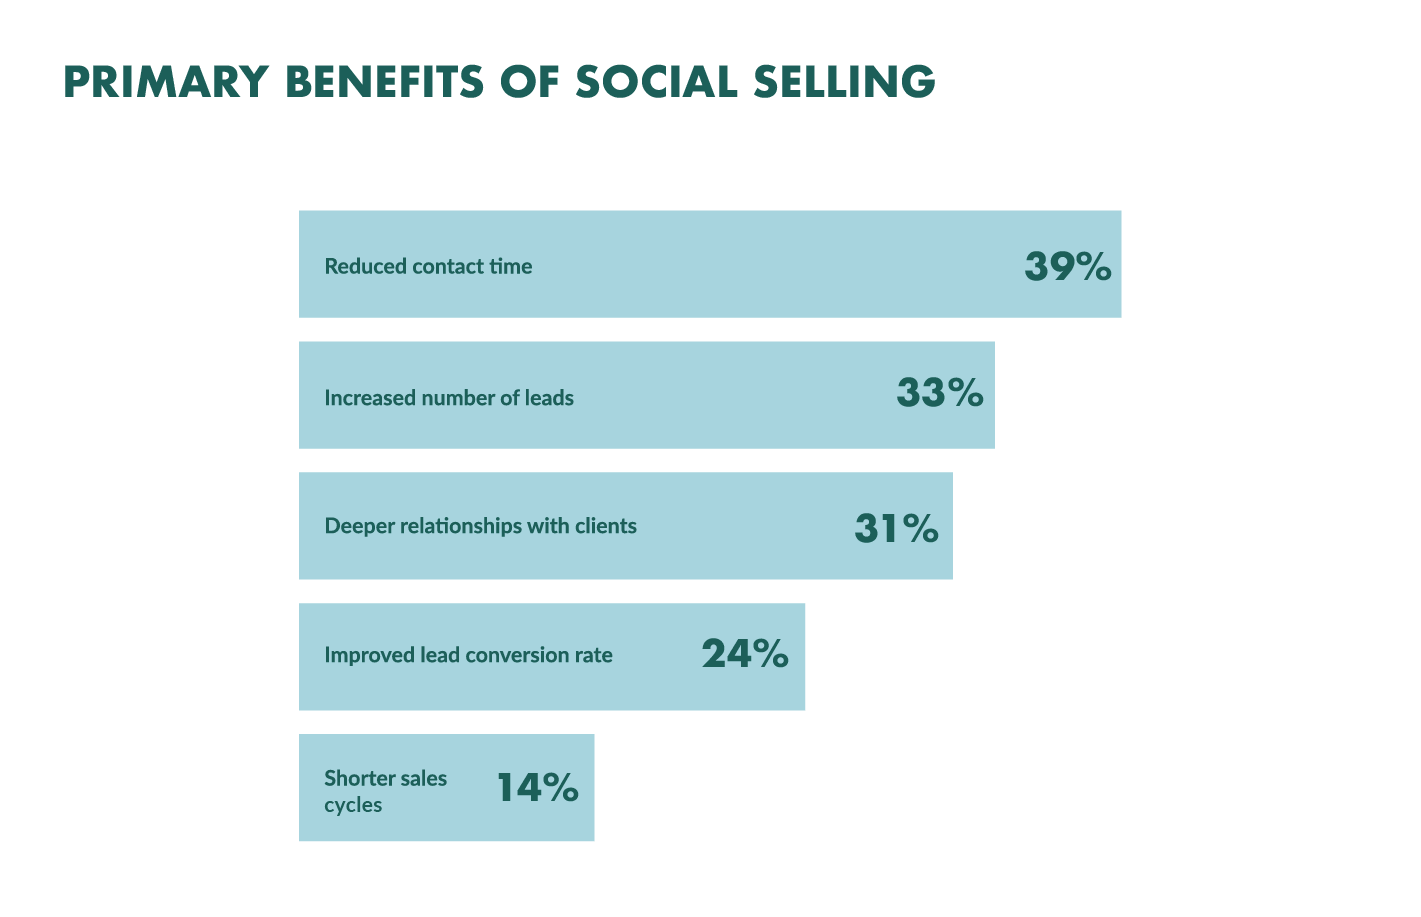 benefits of social selling graph